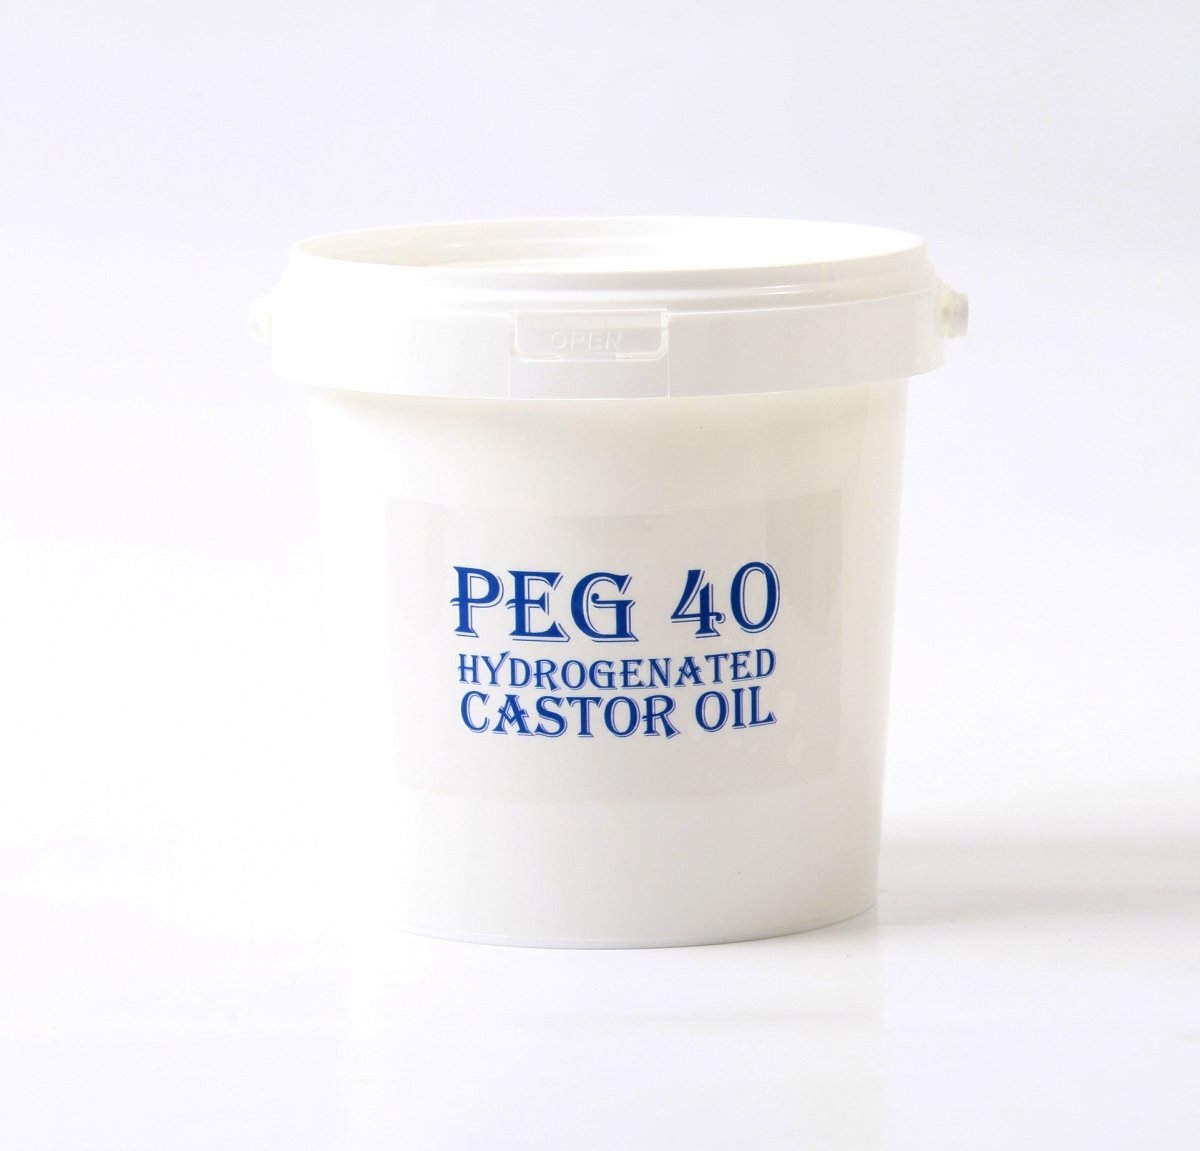 PEG-40 hydrogenated castor oil